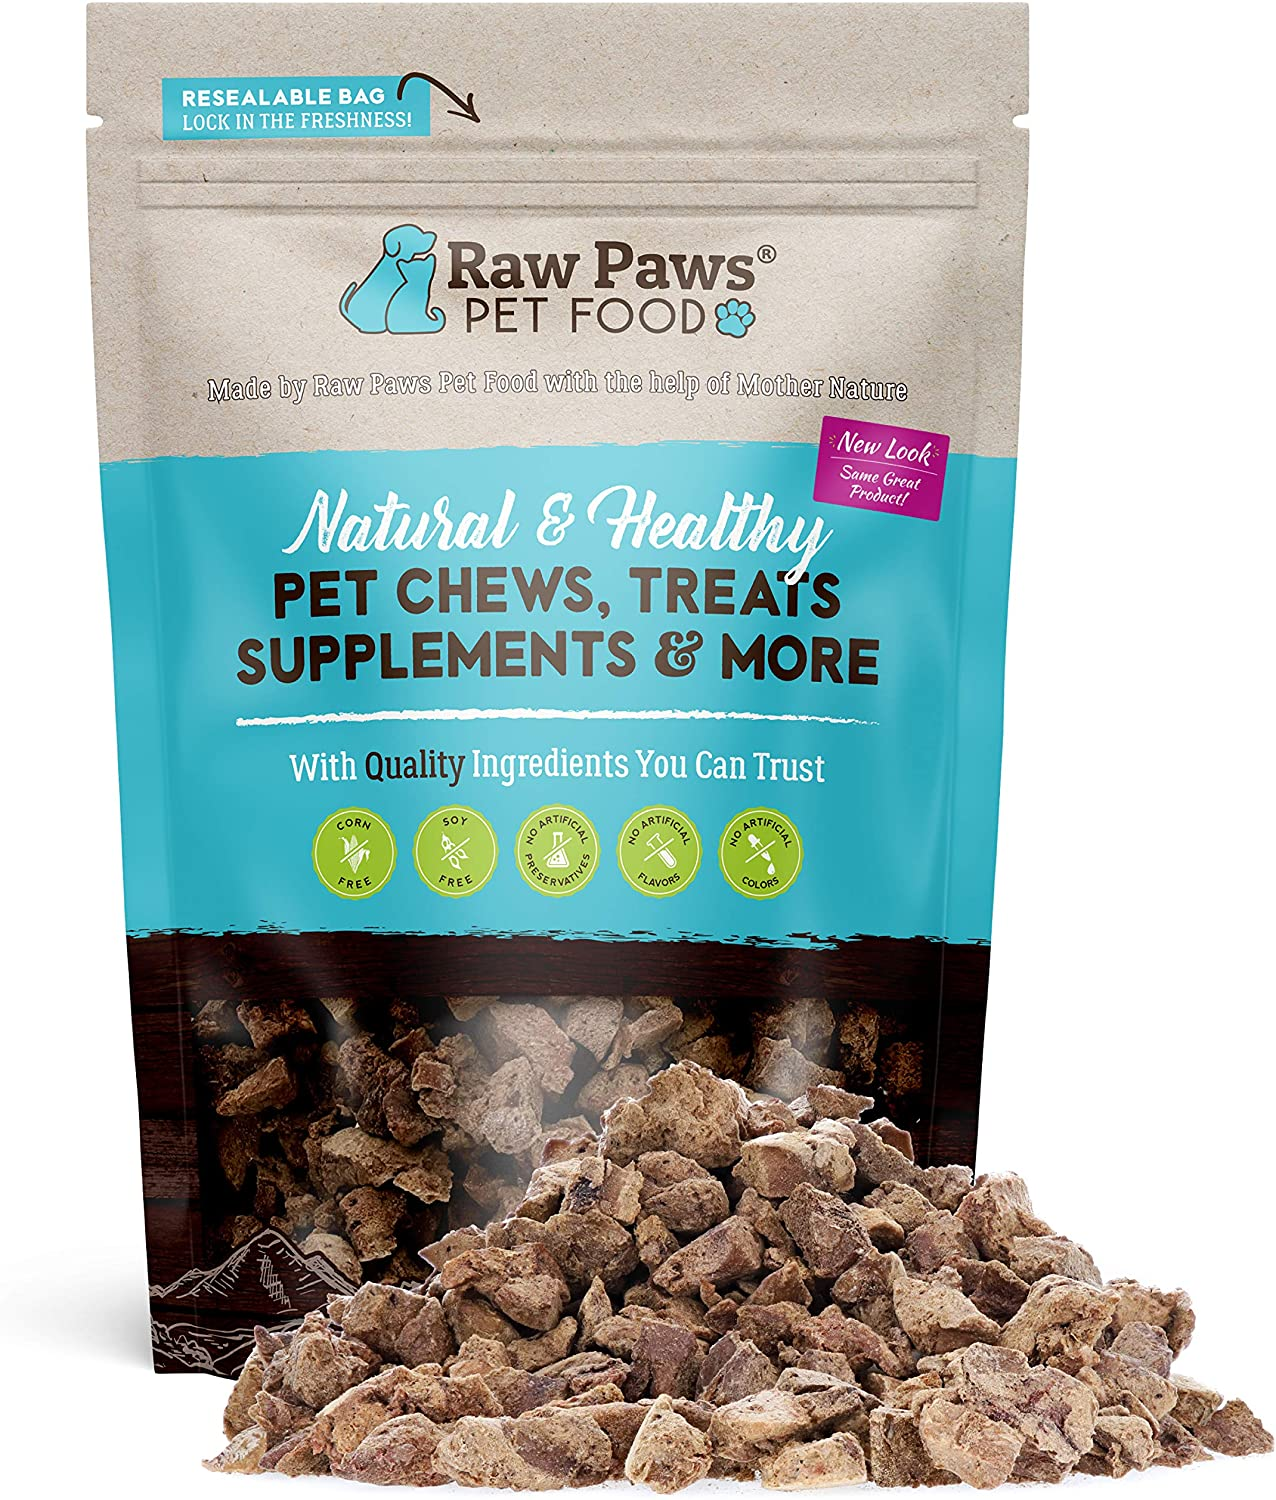 Raw Paws Freeze Dried Chicken Liver for Dogs & Cats, 4-oz - Liver Treats for Dogs Made in USA Only - Human Grade Cat Liver Treats - Freeze Dried Liver Treats for Dogs - Liver Training Treats for Dogs